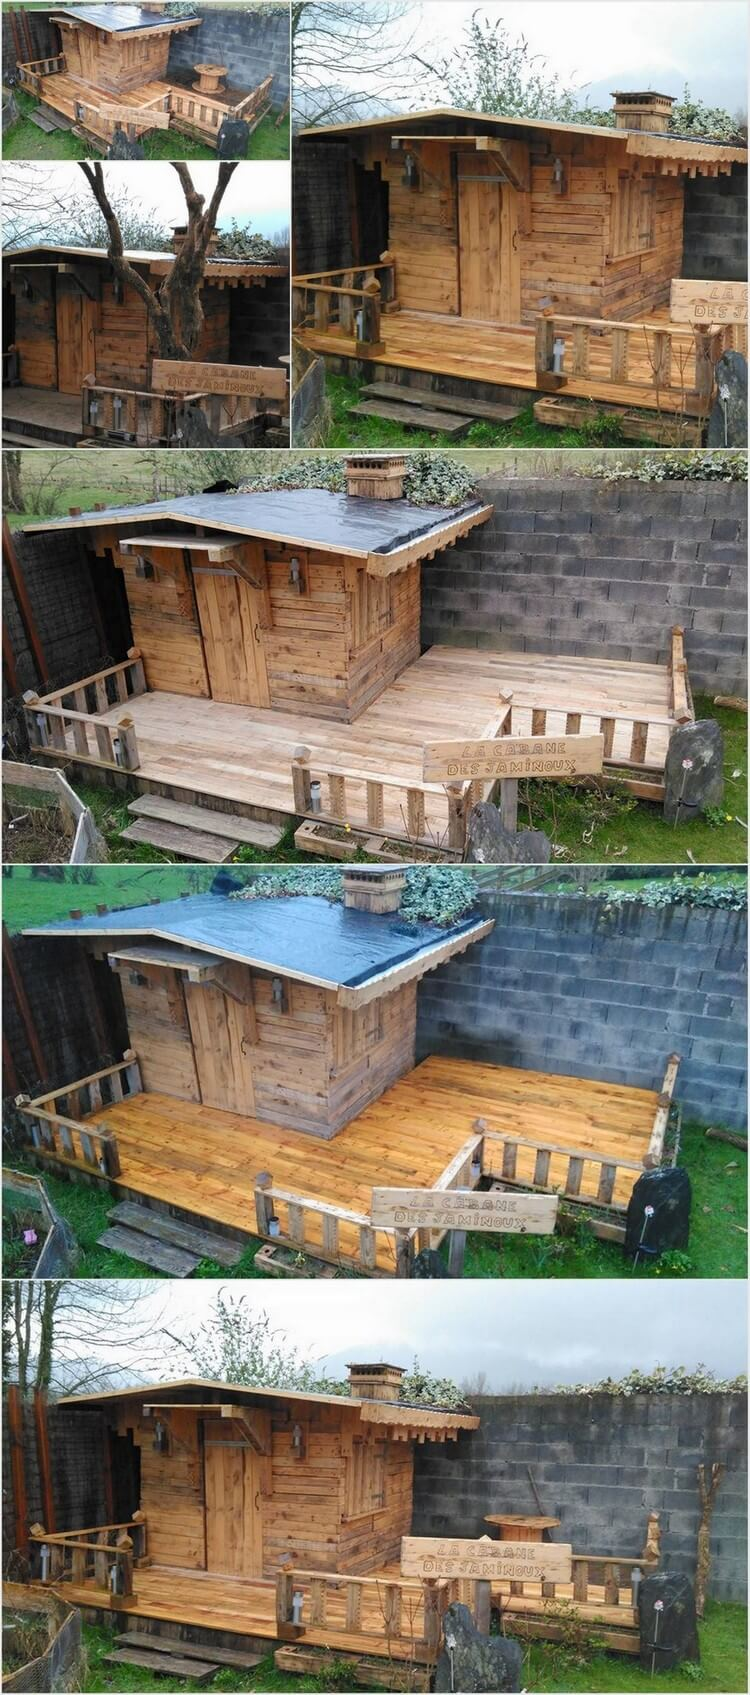 Diy wood pallet patio cabin deck project pallet wood for Diy projects using wood pallets